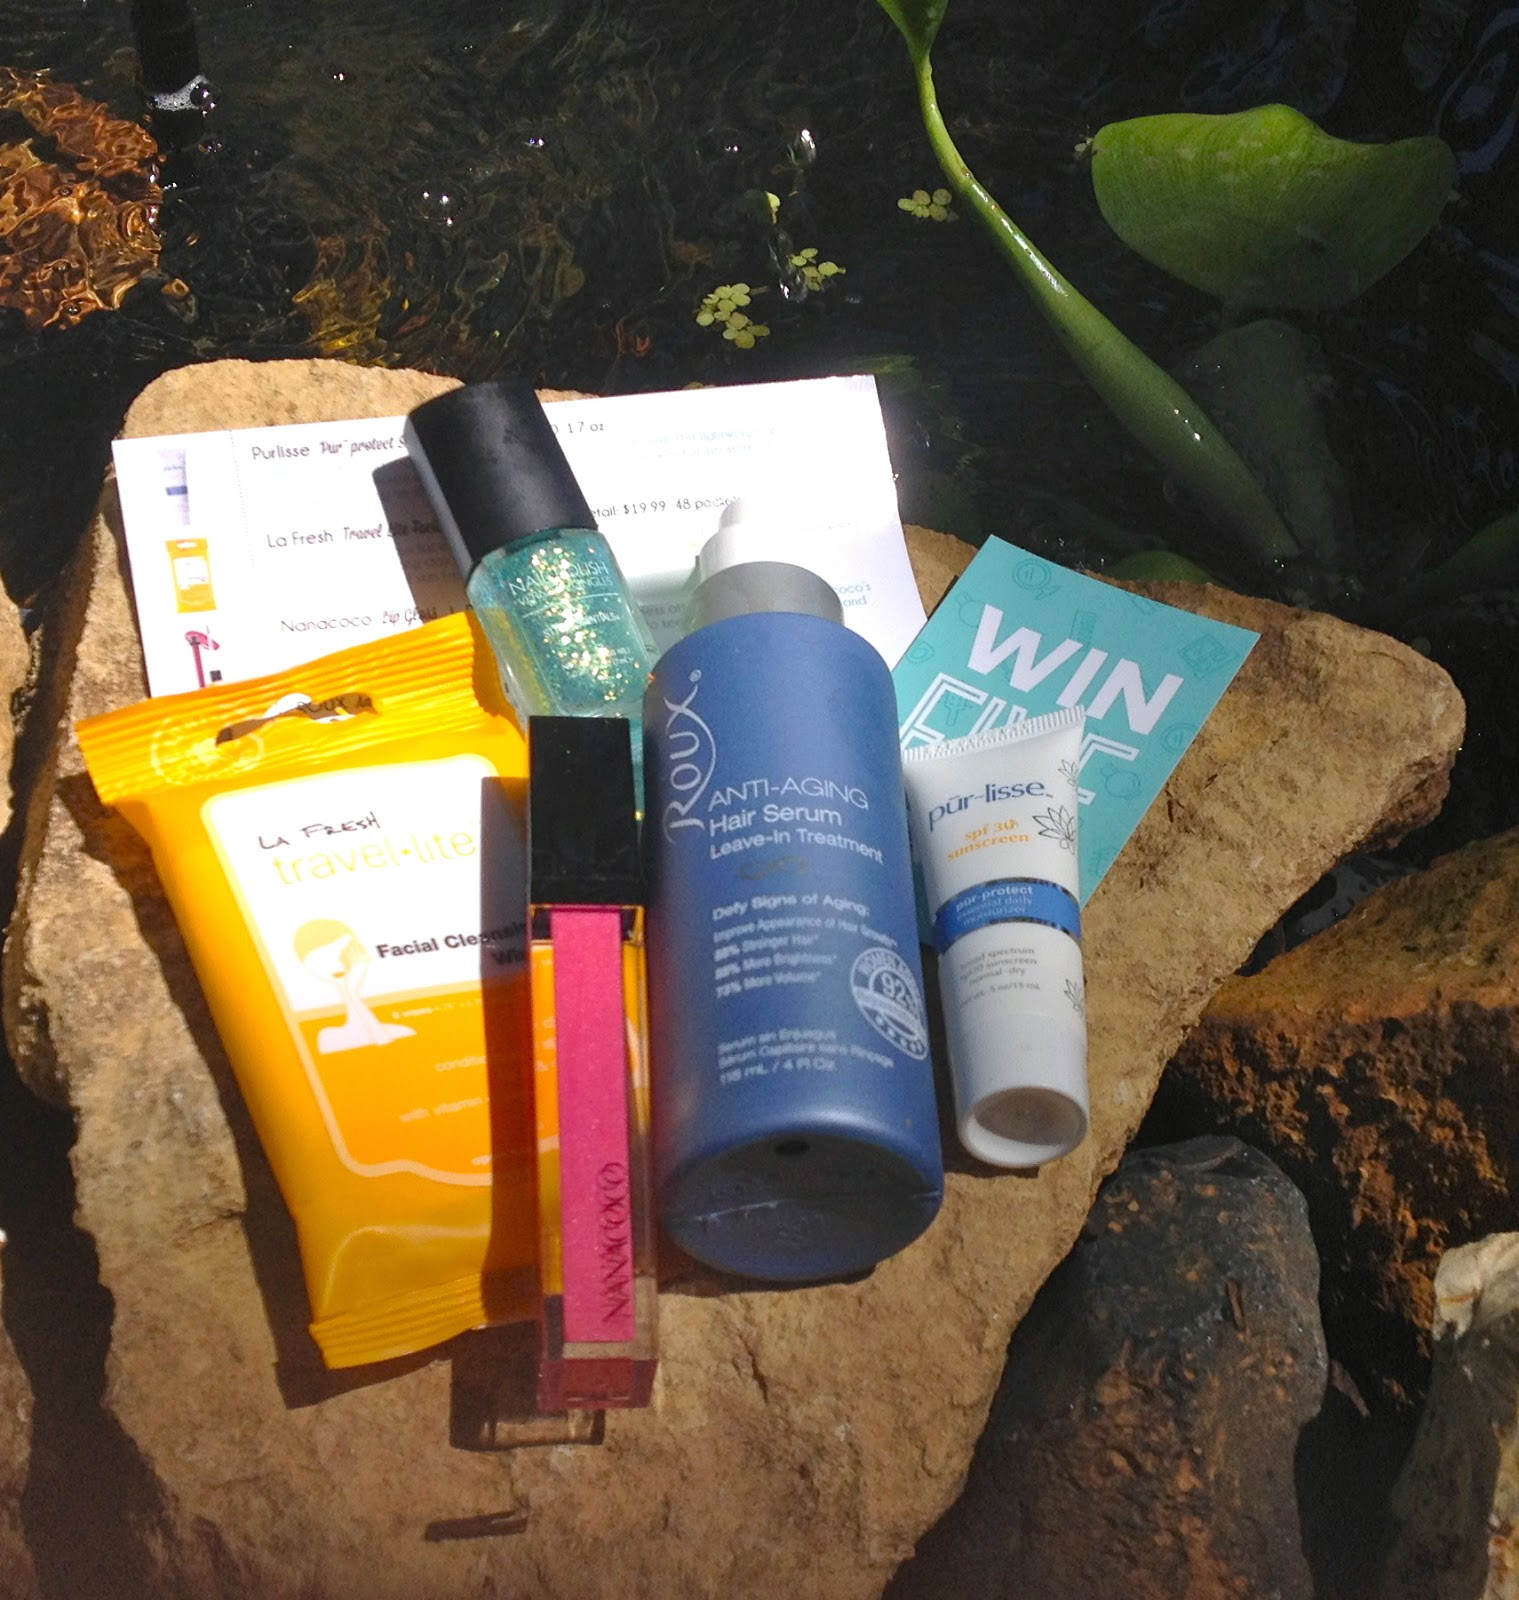 What's In The Box? Beauty Box Five Review August 2014